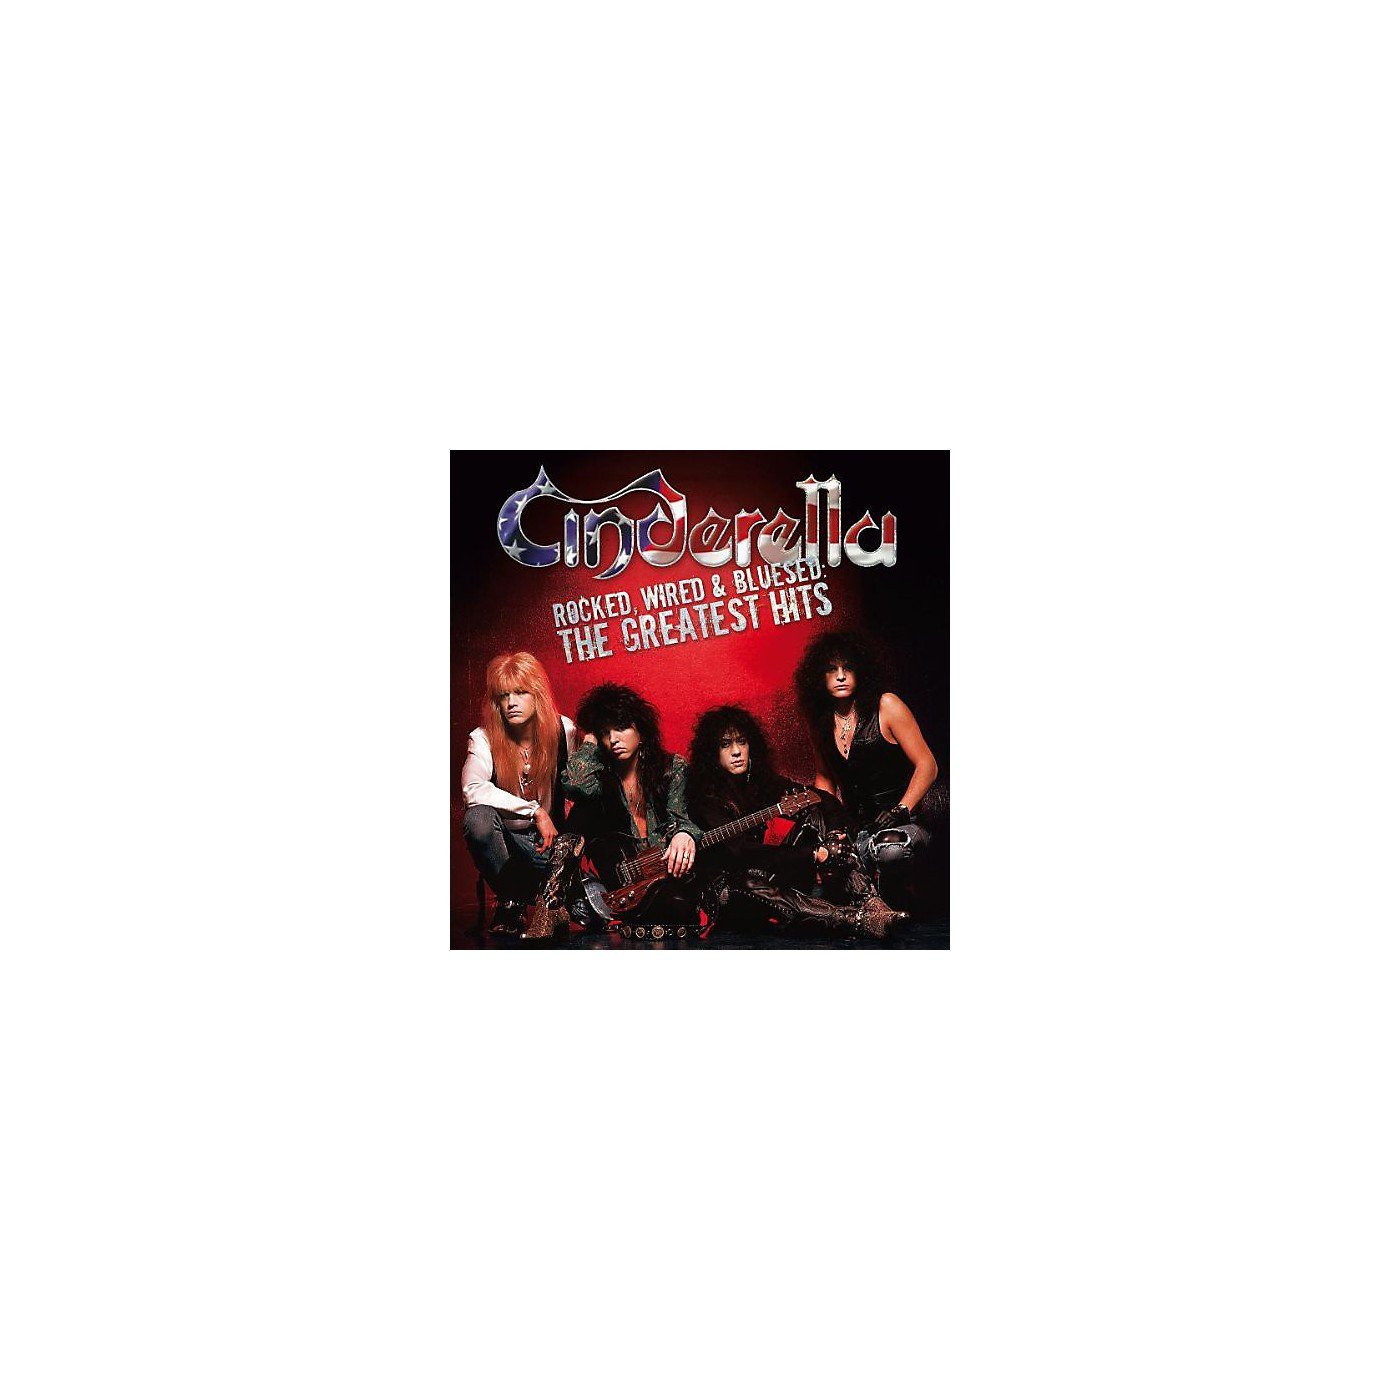 Alliance Cinderella - Rocked, Wired and Bluesed: The Greatest Hits (CD) thumbnail